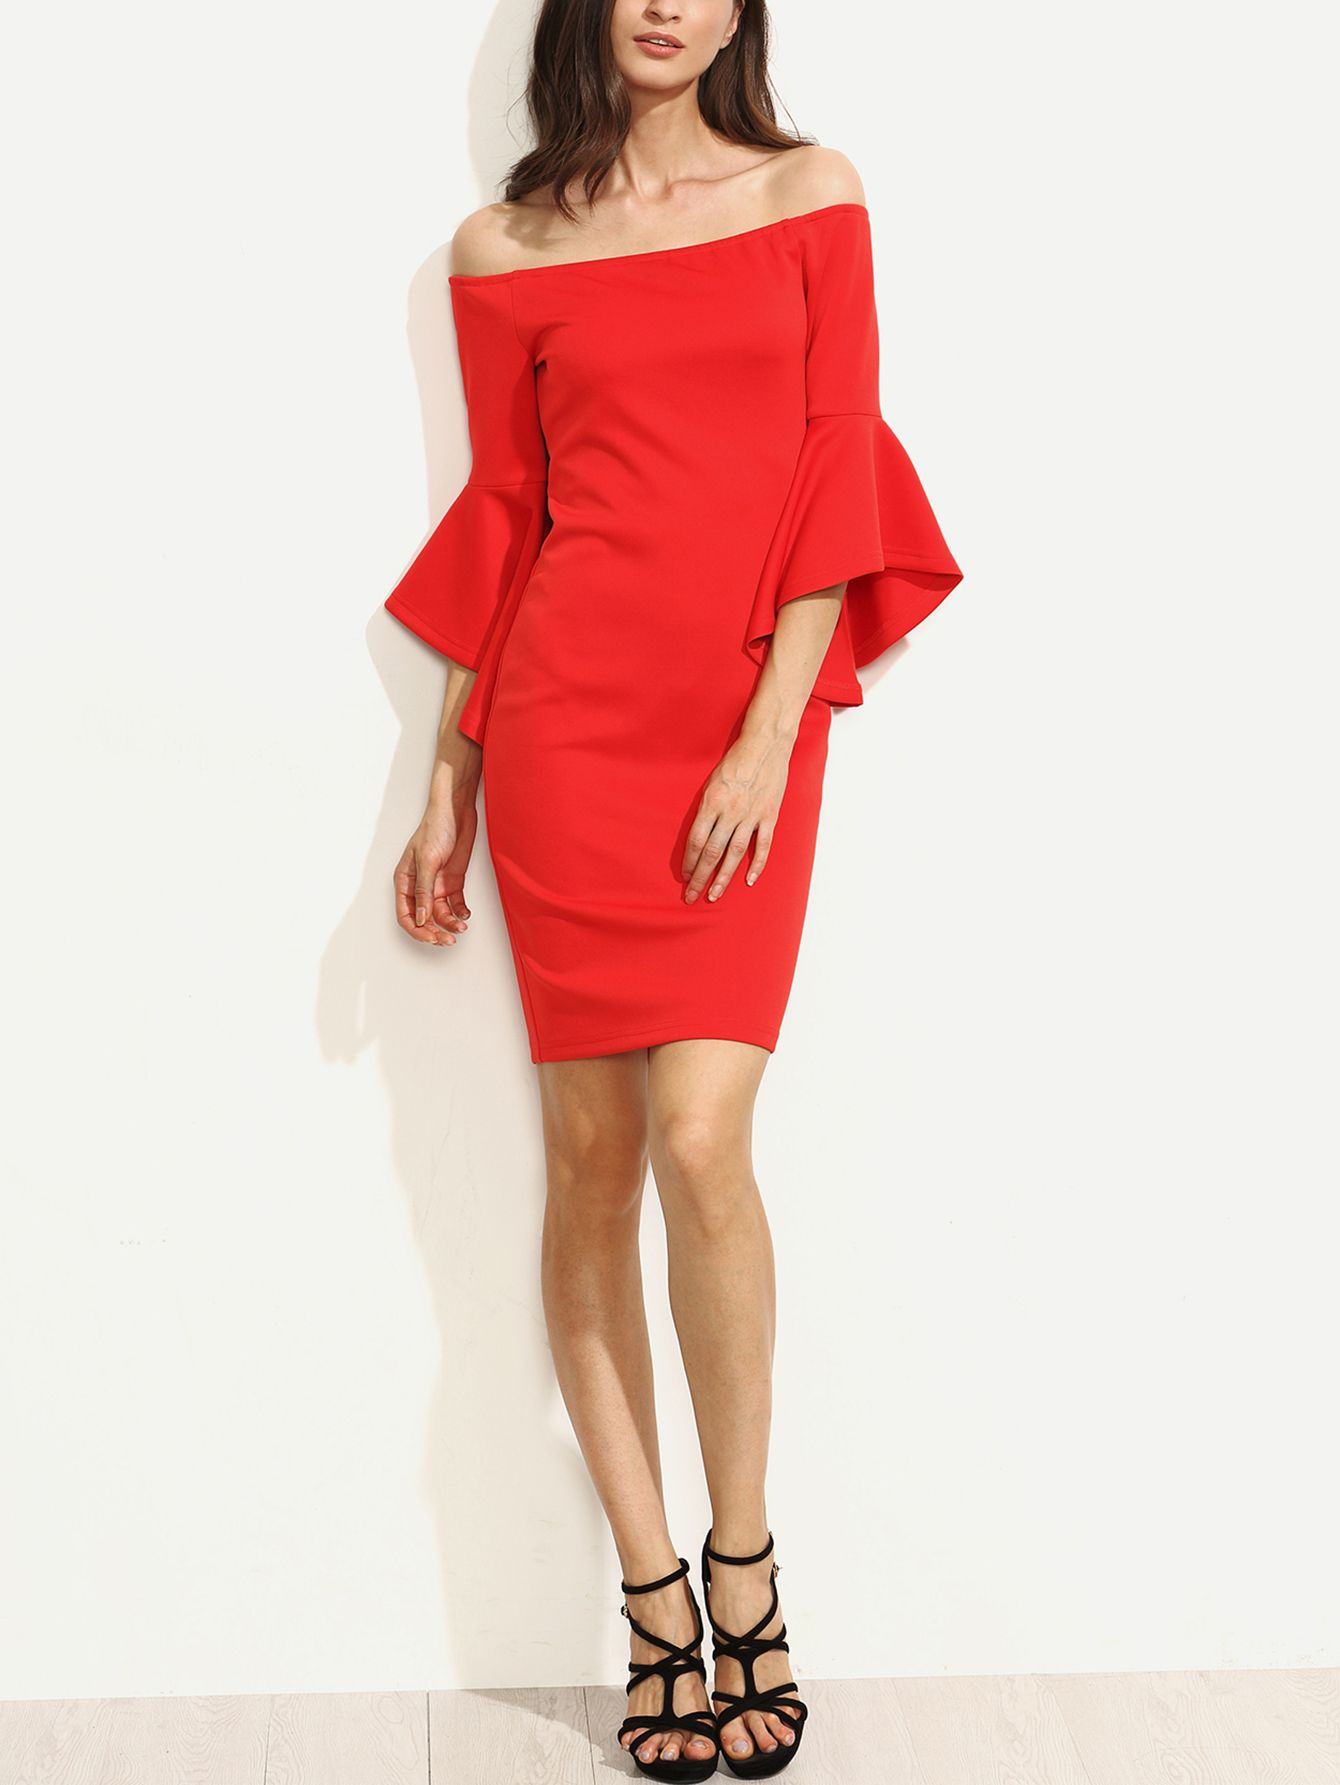 d56c3d4463e1 Shop Red Ruffle Sleeve Off The Shoulder Split Sheath Dress online. SheIn  offers Red Ruffle Sleeve Off The Shoulder Split Sheath Dress   more to fit  your ...